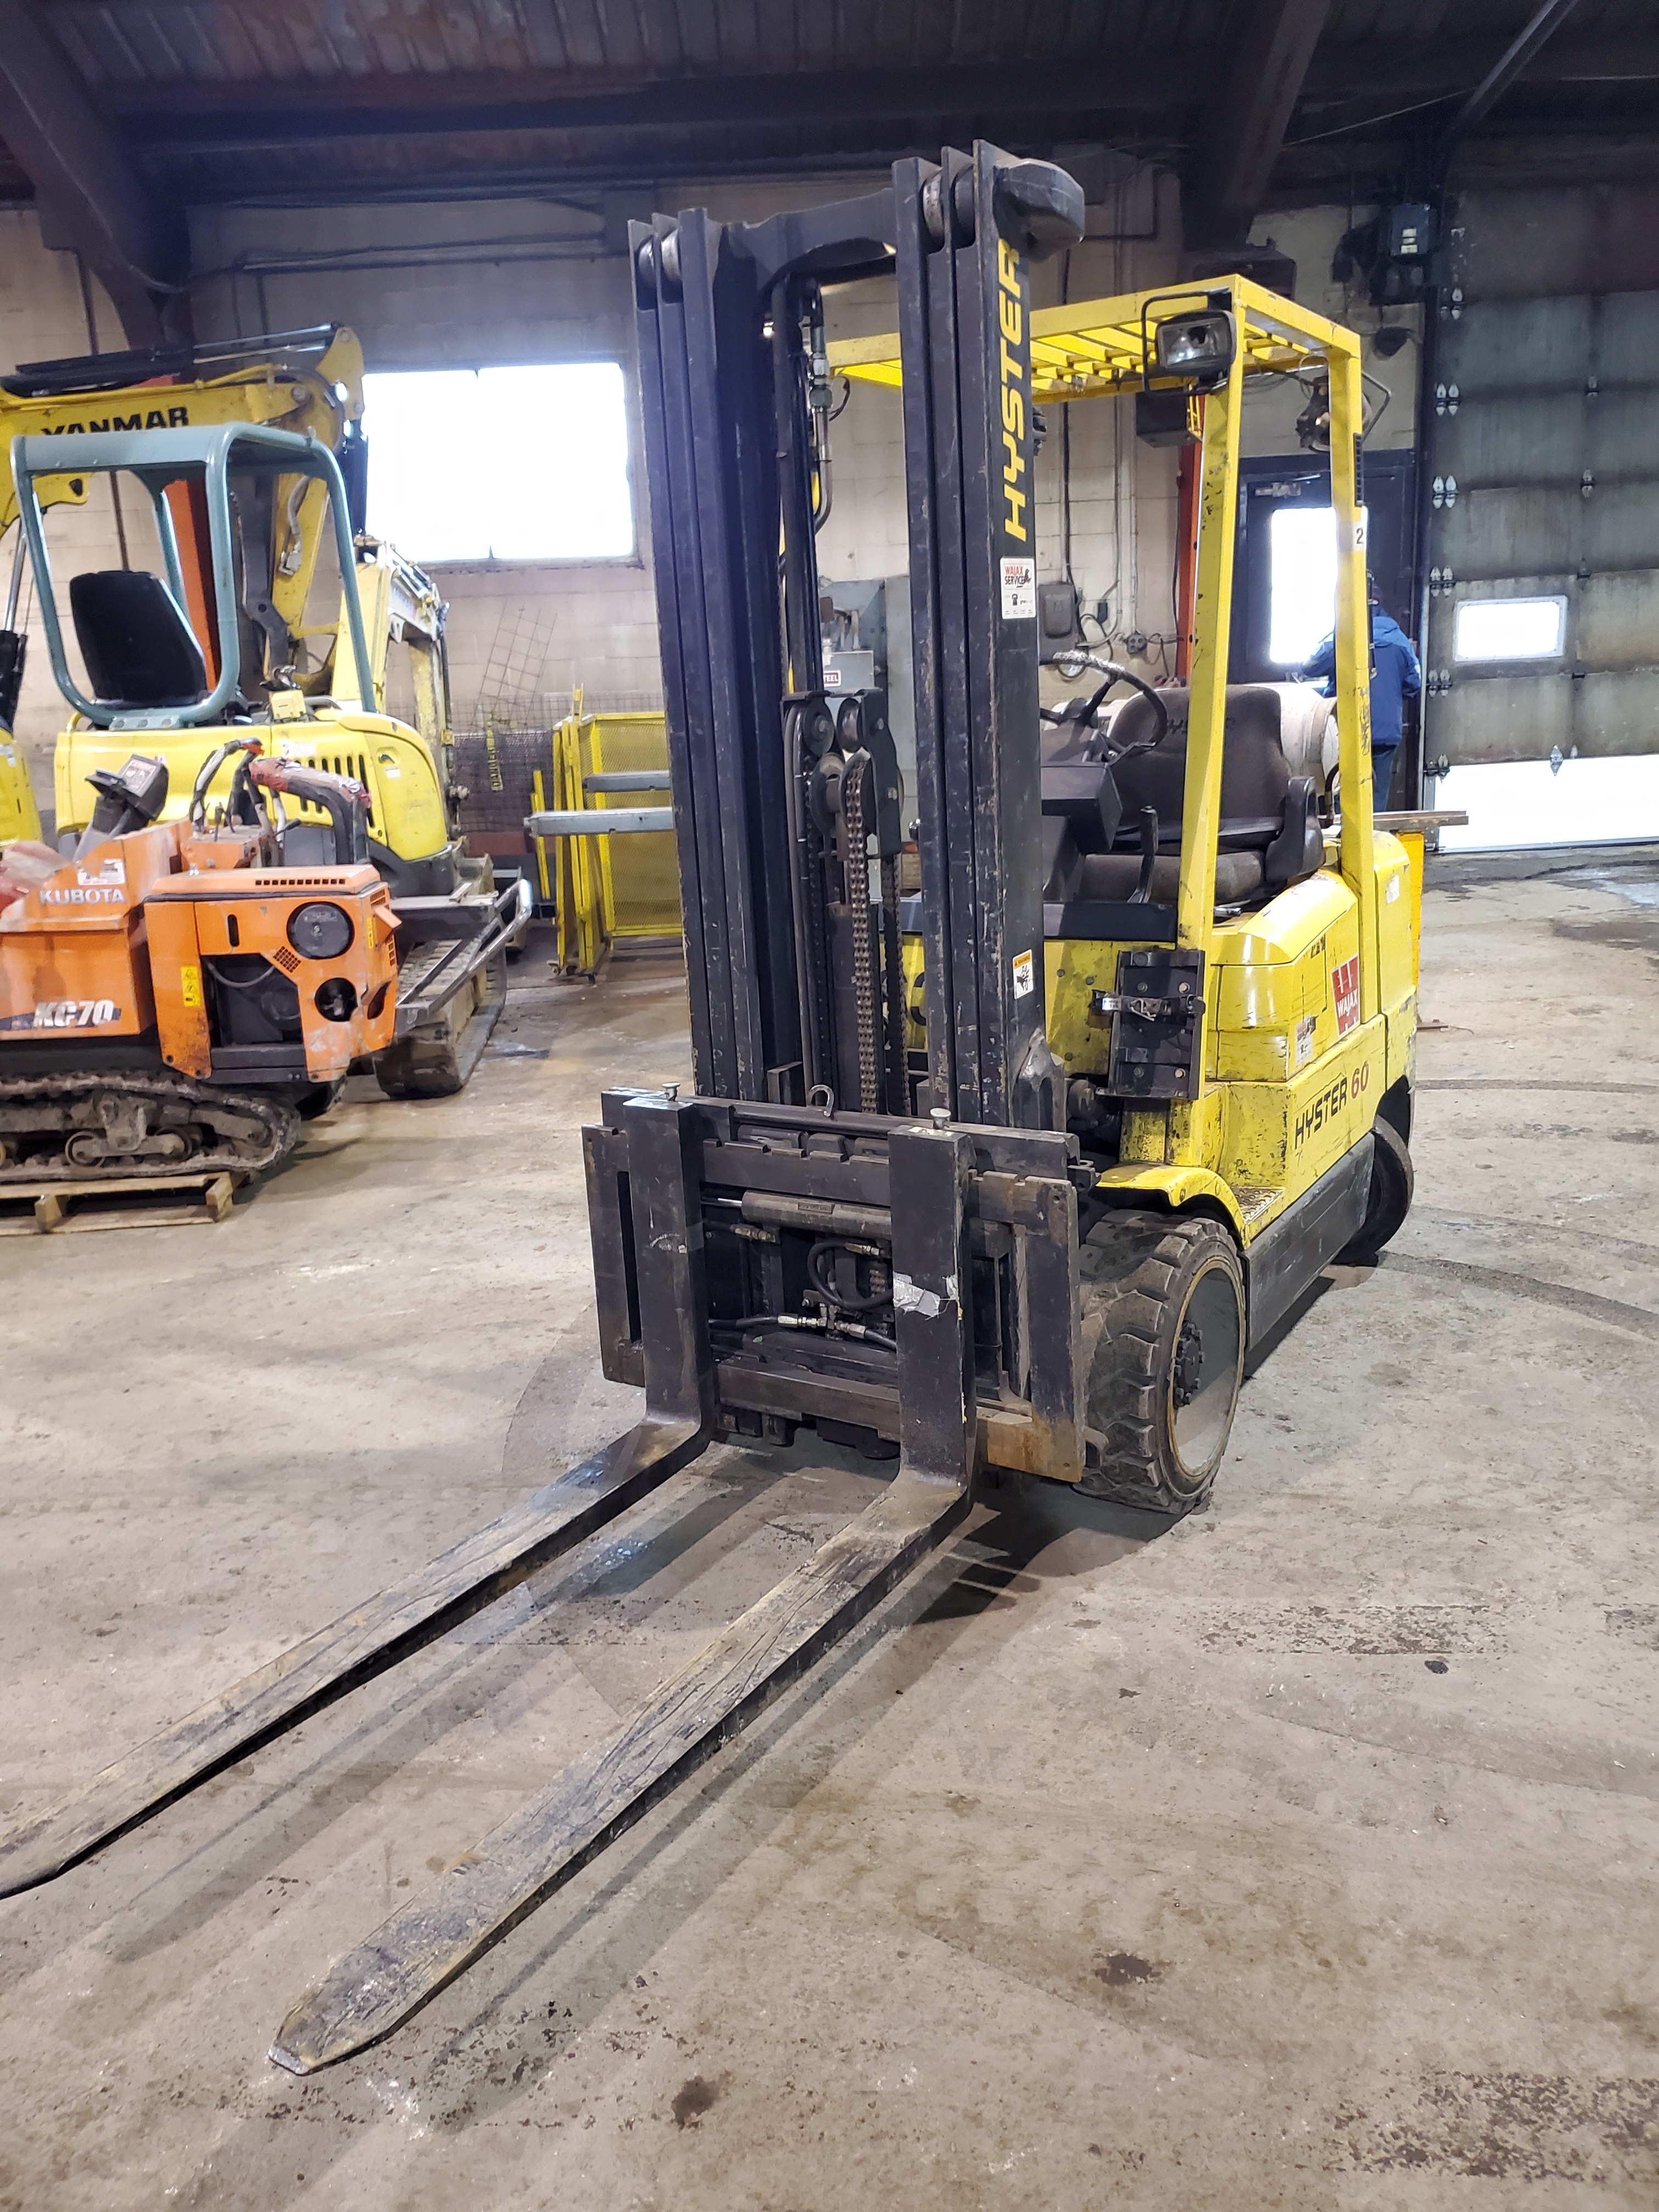 HYSTER PROPANE FORKLIFT, S60XM 6000LB CAPACITY, TRIPLE MAST, SIDE SHIFT- LOCATION - LACHINE, QUEBEC - Image 2 of 6